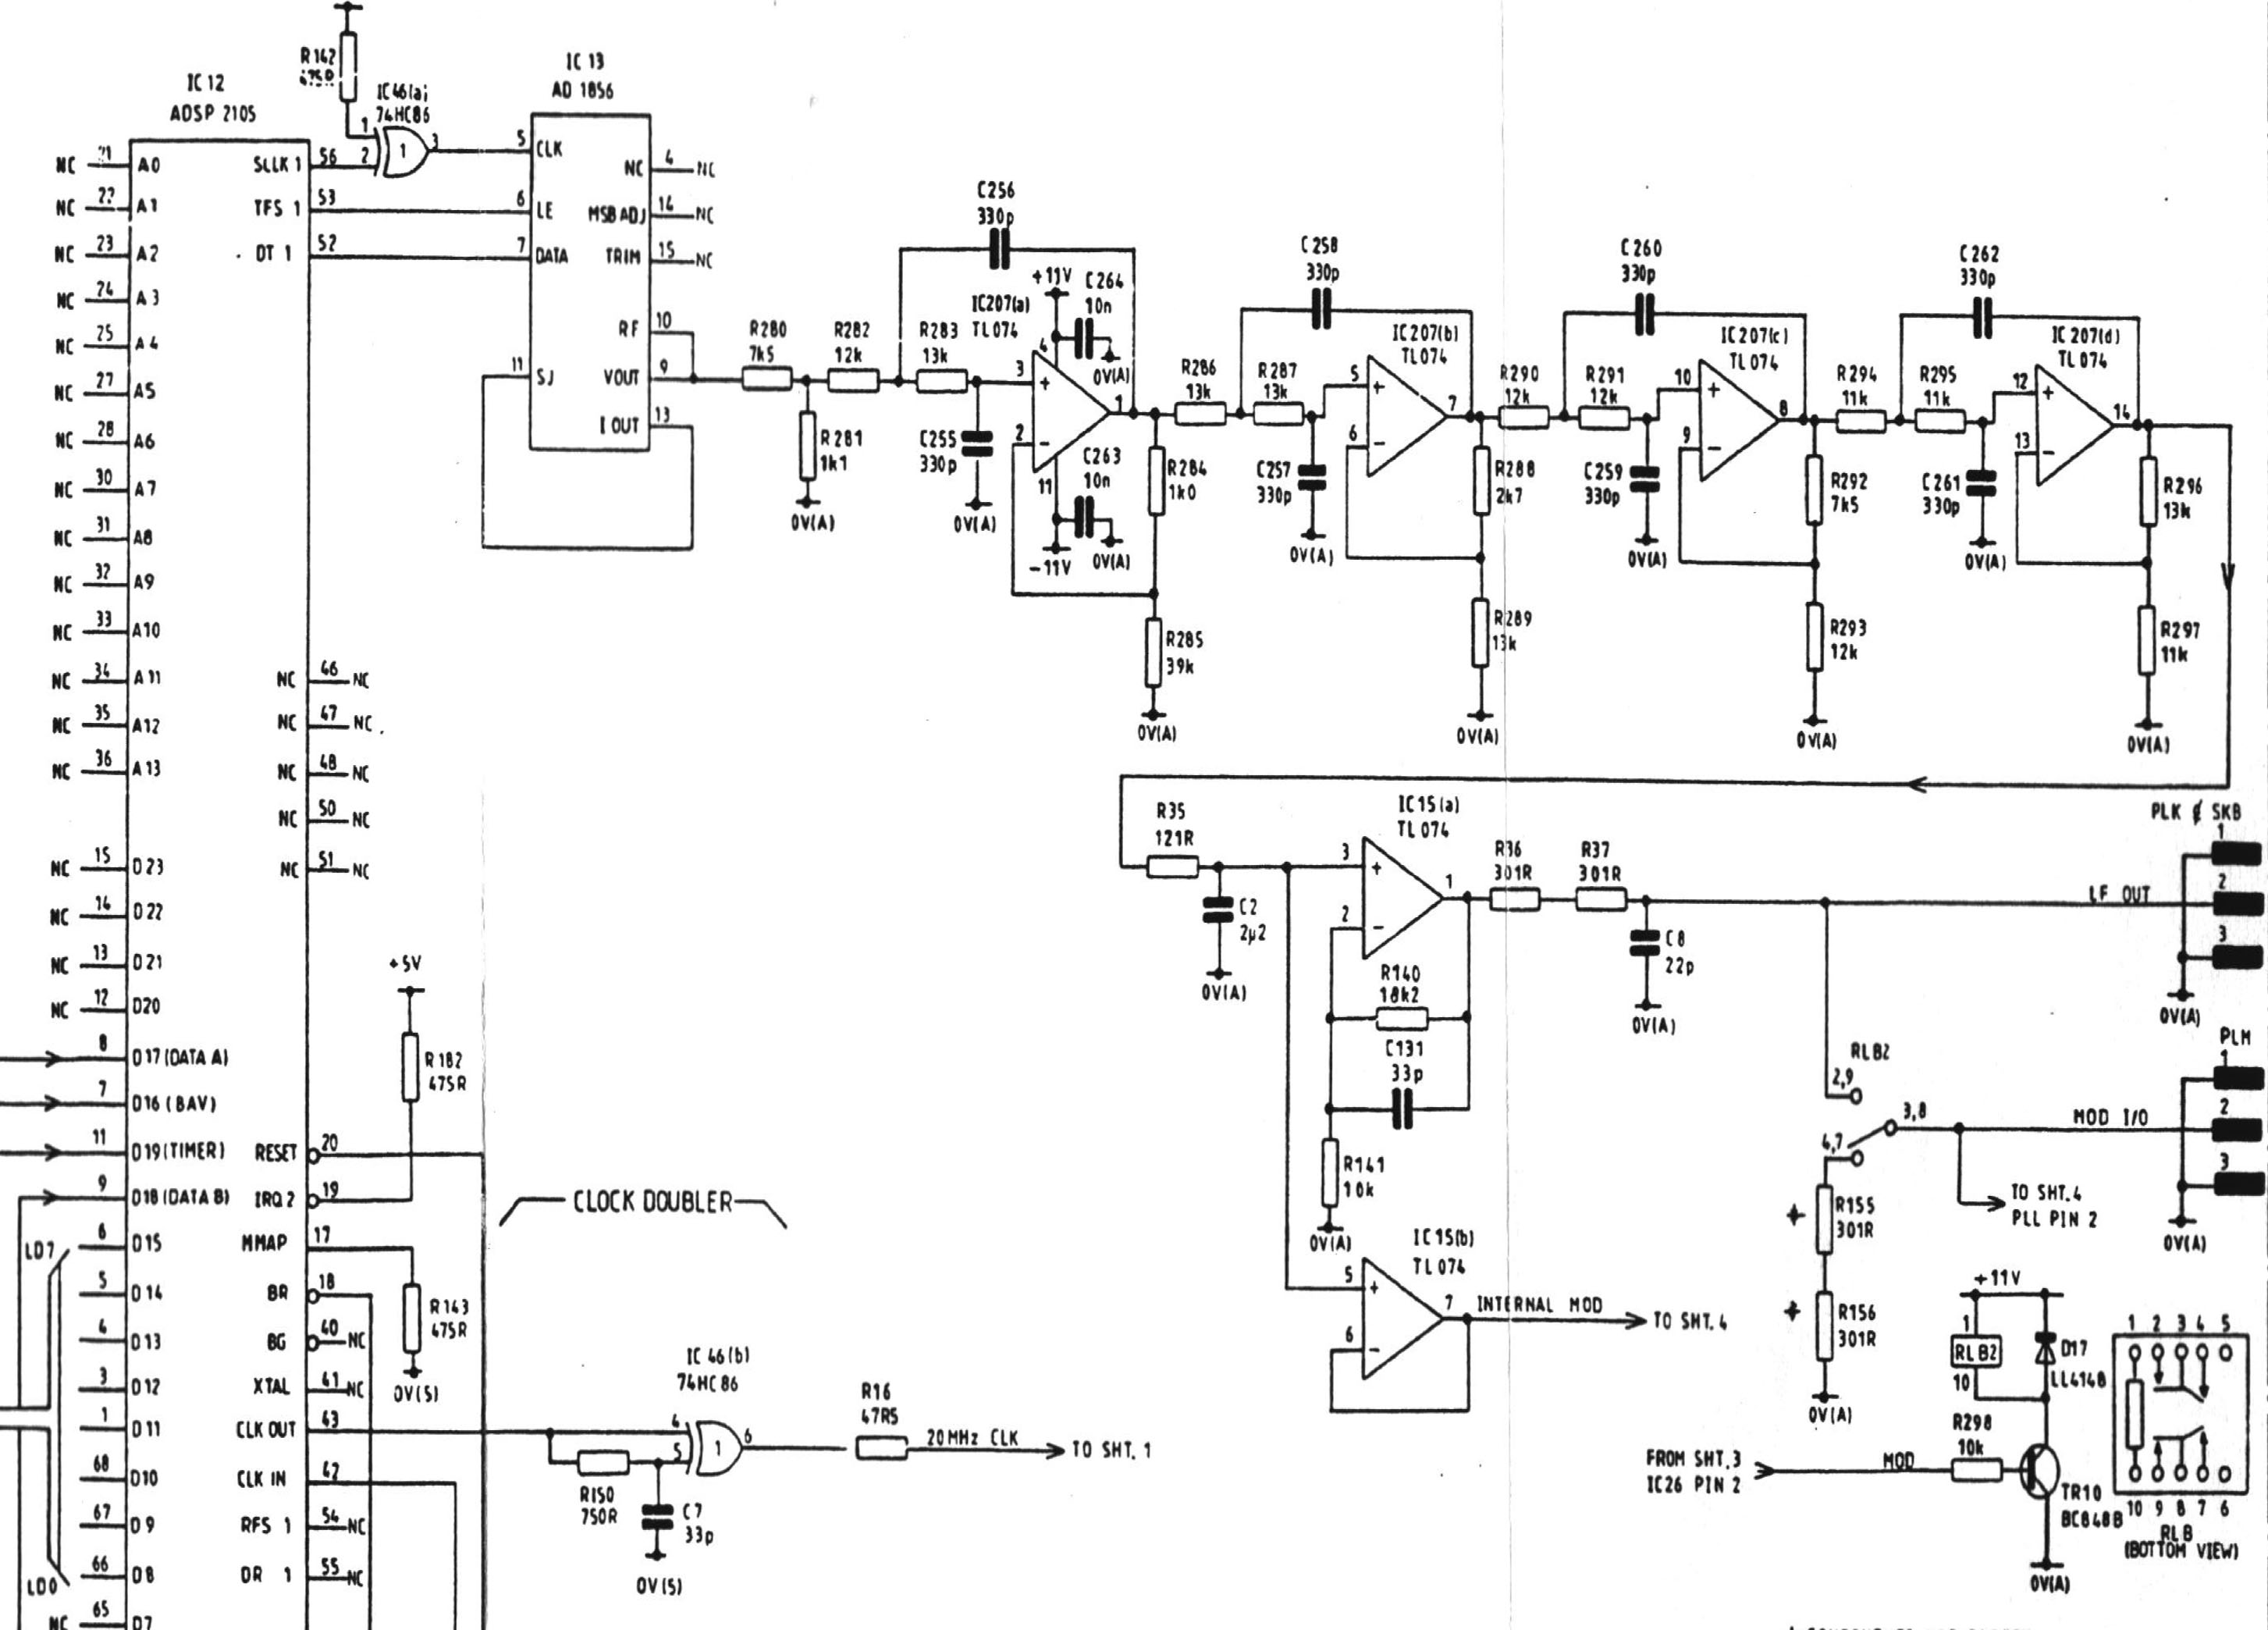 Quick Repair Project Marconi 2024 Page 1 Ve Used To Build This Circuitclick It For Higher Resolution Image Everything Is Together In Area Of The Board By Oxco Dsp A Analog Devices Adsp 2105 With An Ad1856 Serial Dac Op Amps Are Couple